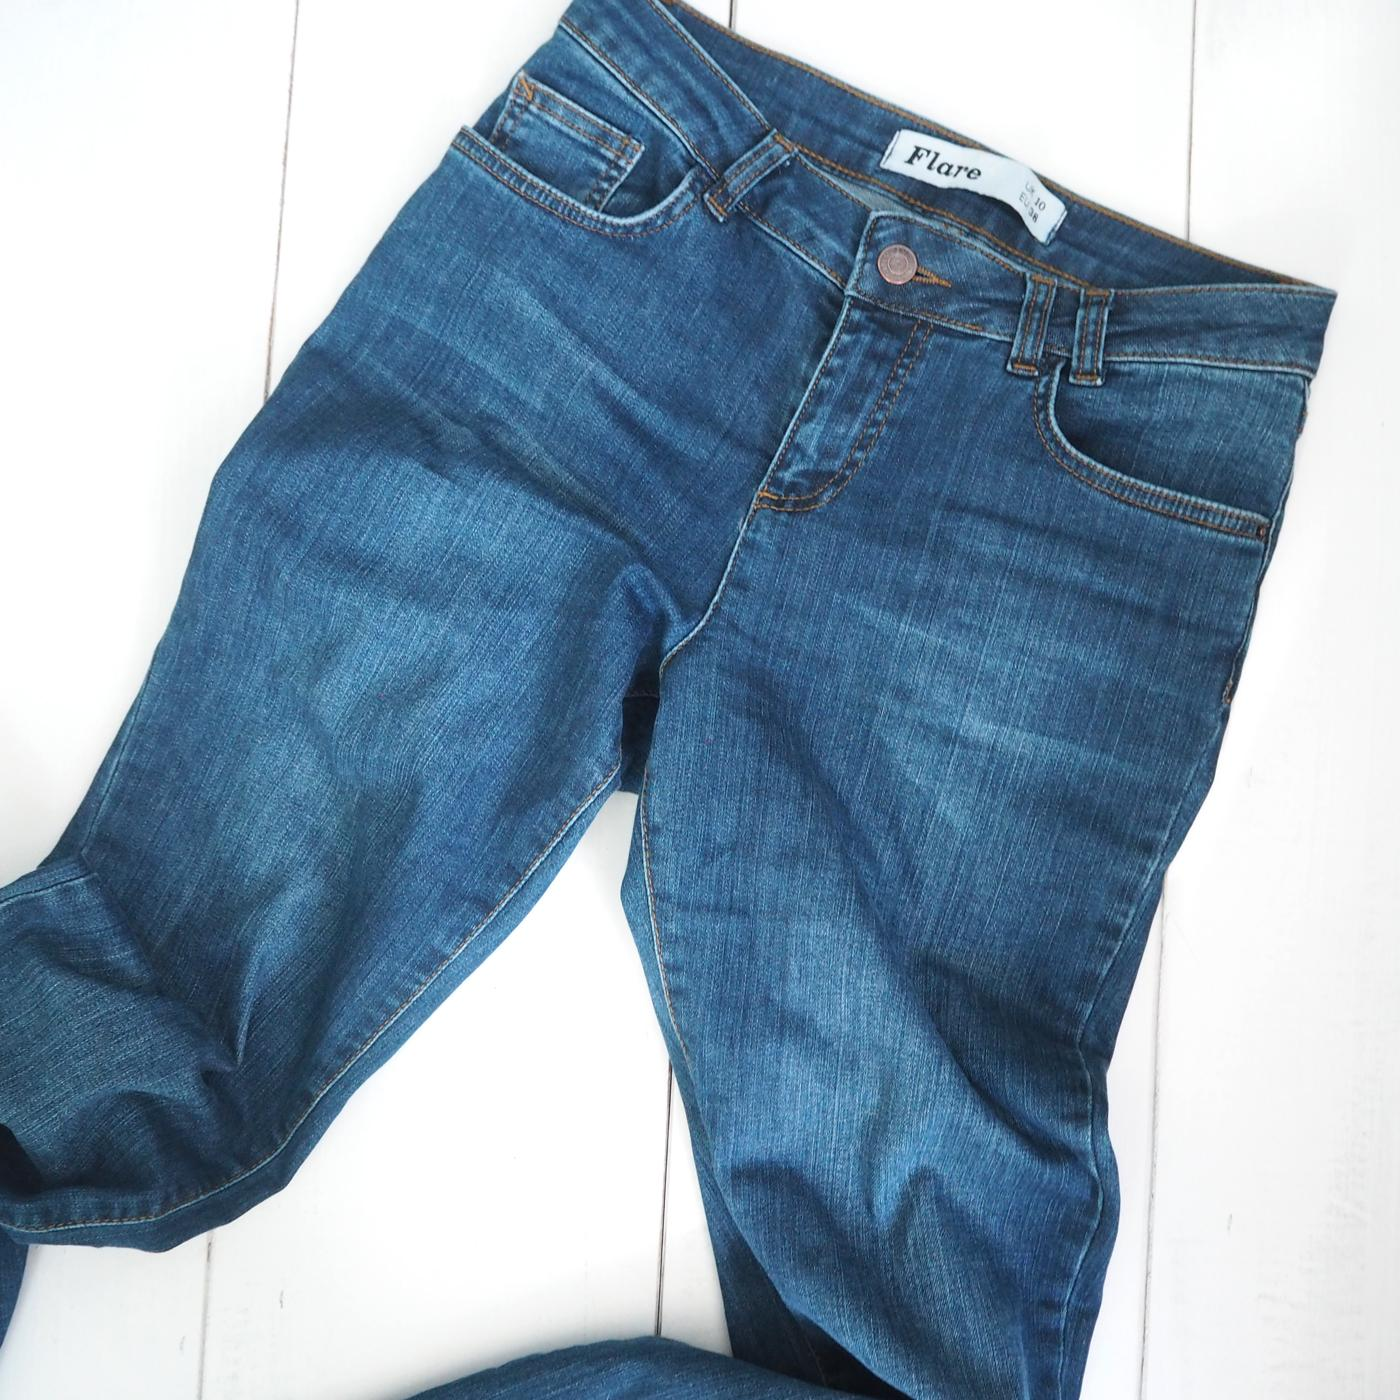 NEW-LOOK-JEANS (1)